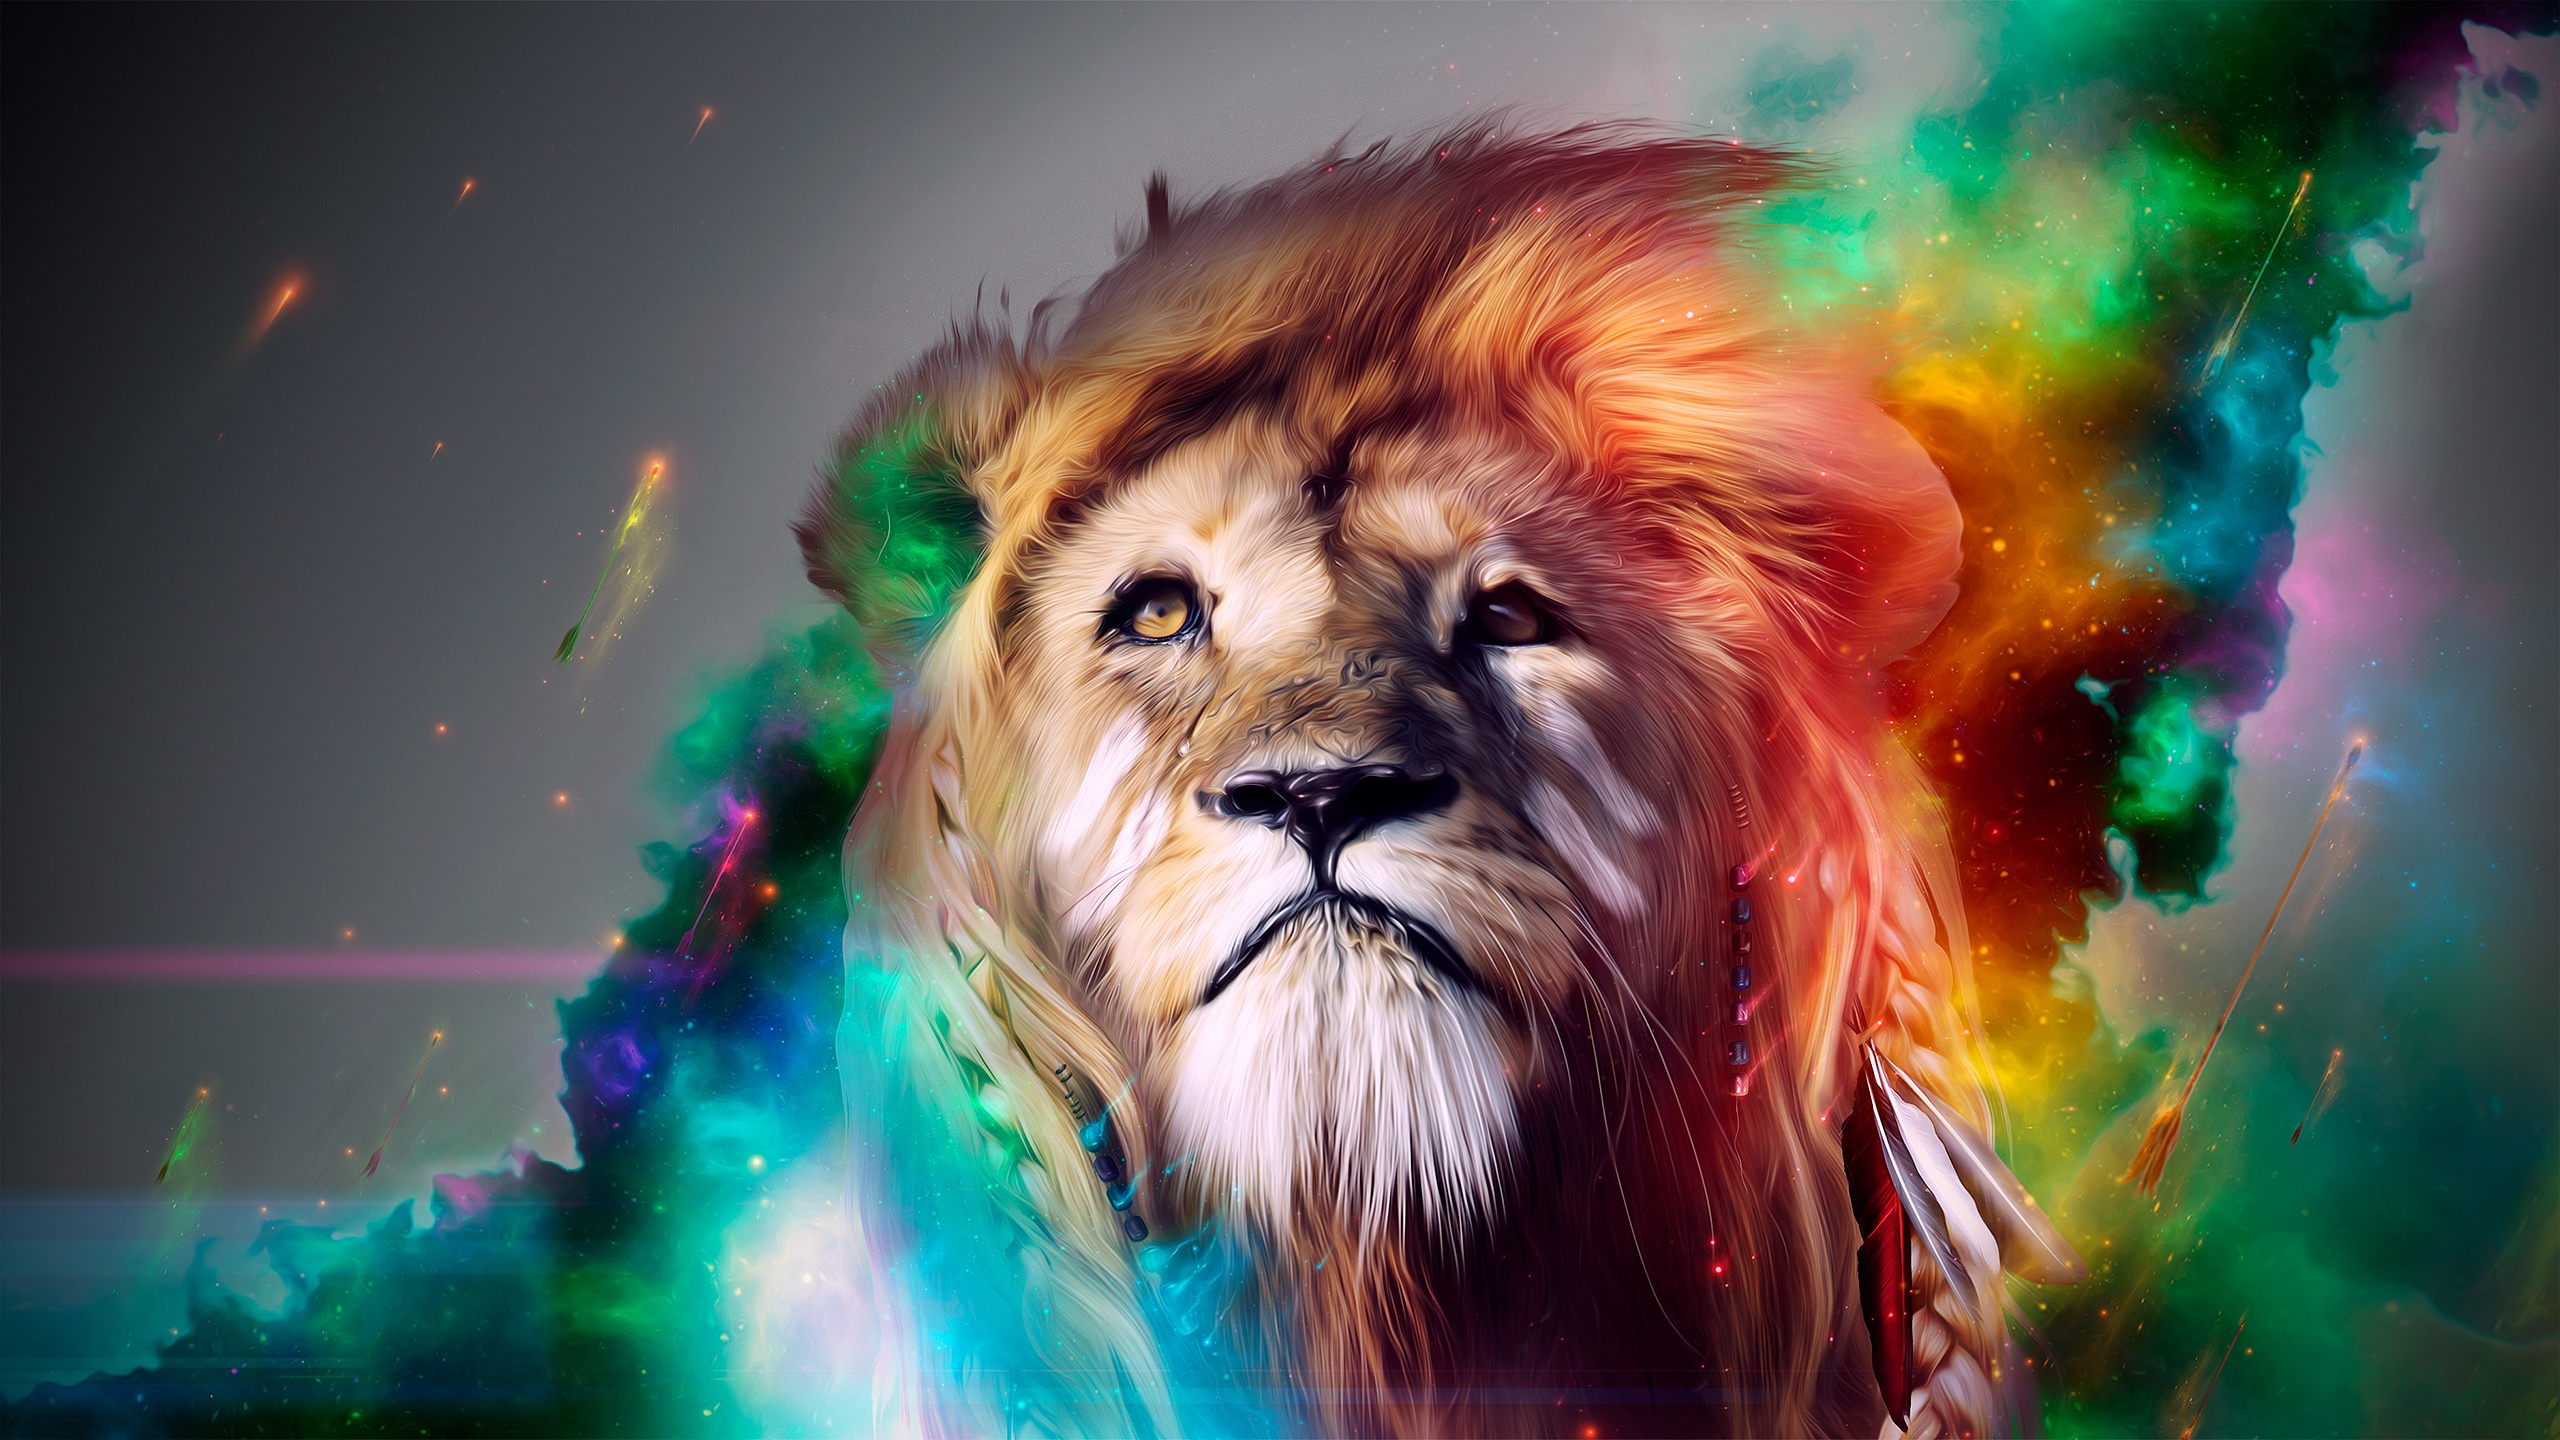 25 colorful hd wallpapers